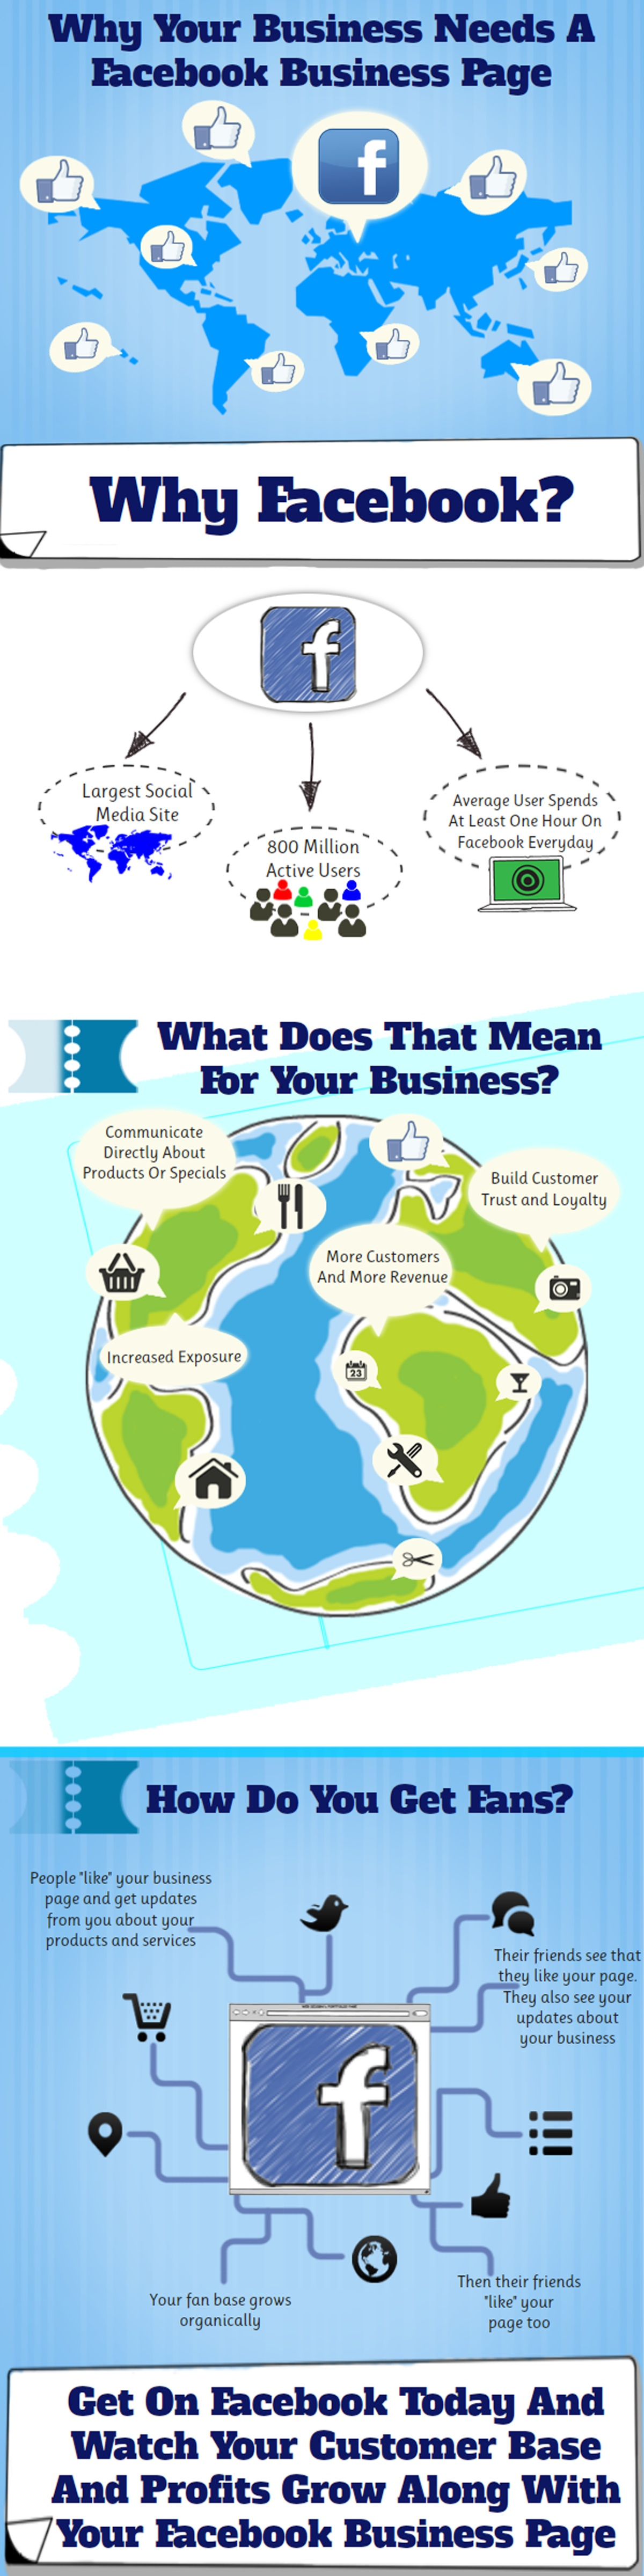 Create A Facebook Business Page Infographic